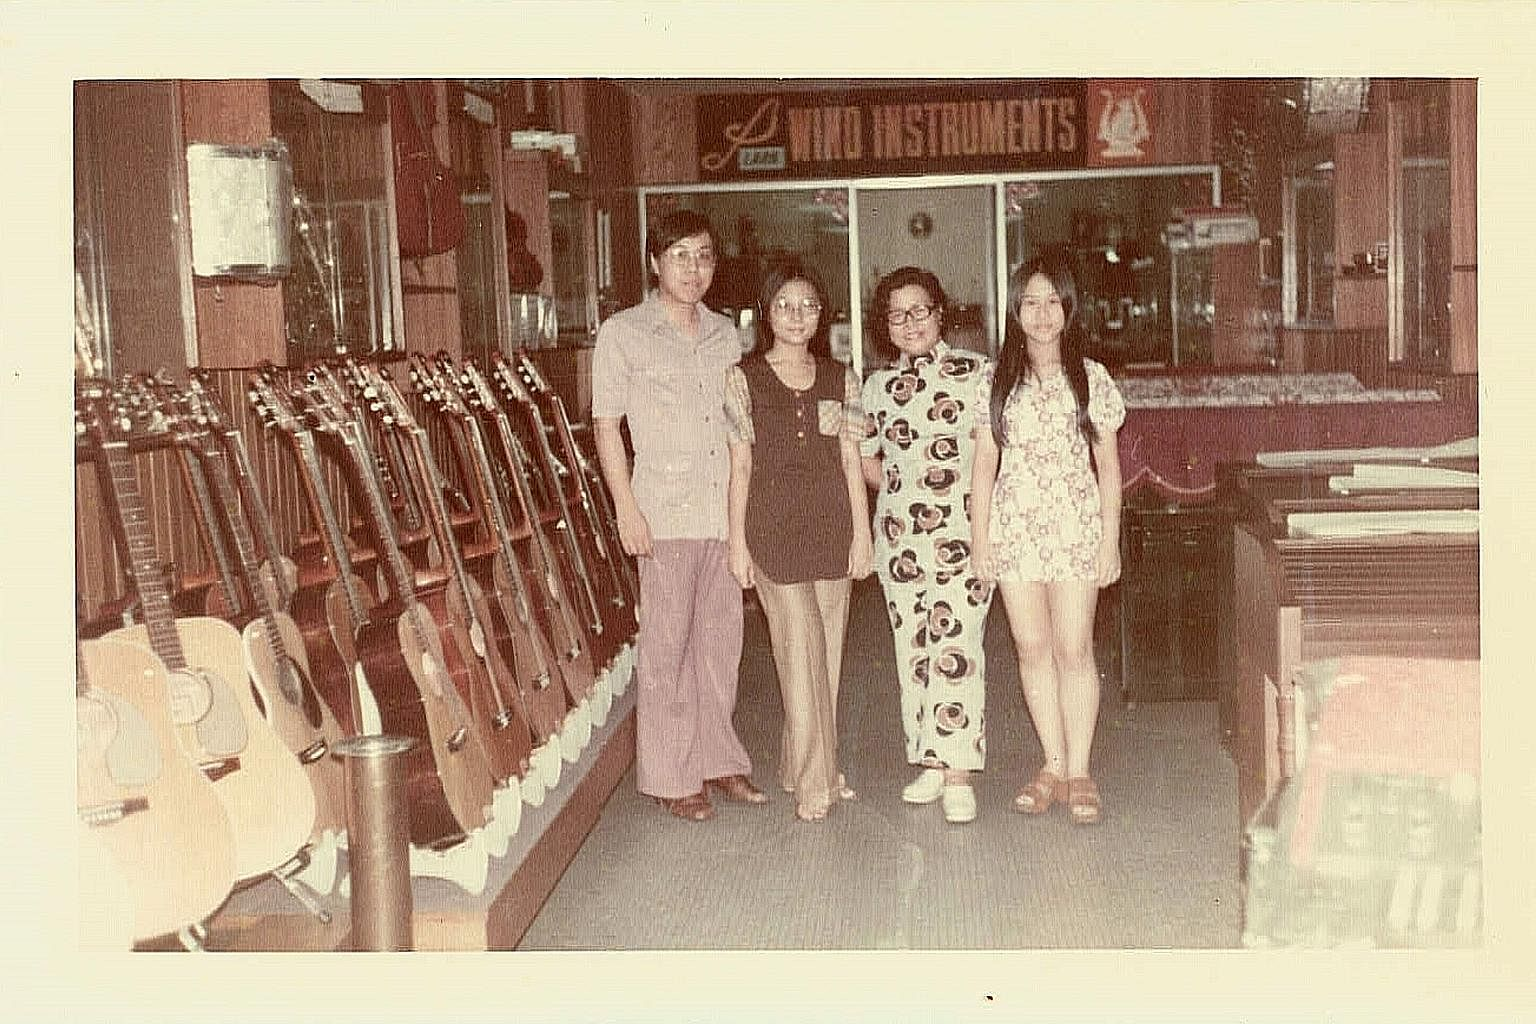 (From left) City Music founder Willy Hoe, his wife, Shirley, Mr Hoe's mother and an unidentified woman at their original store at Bras Basah.